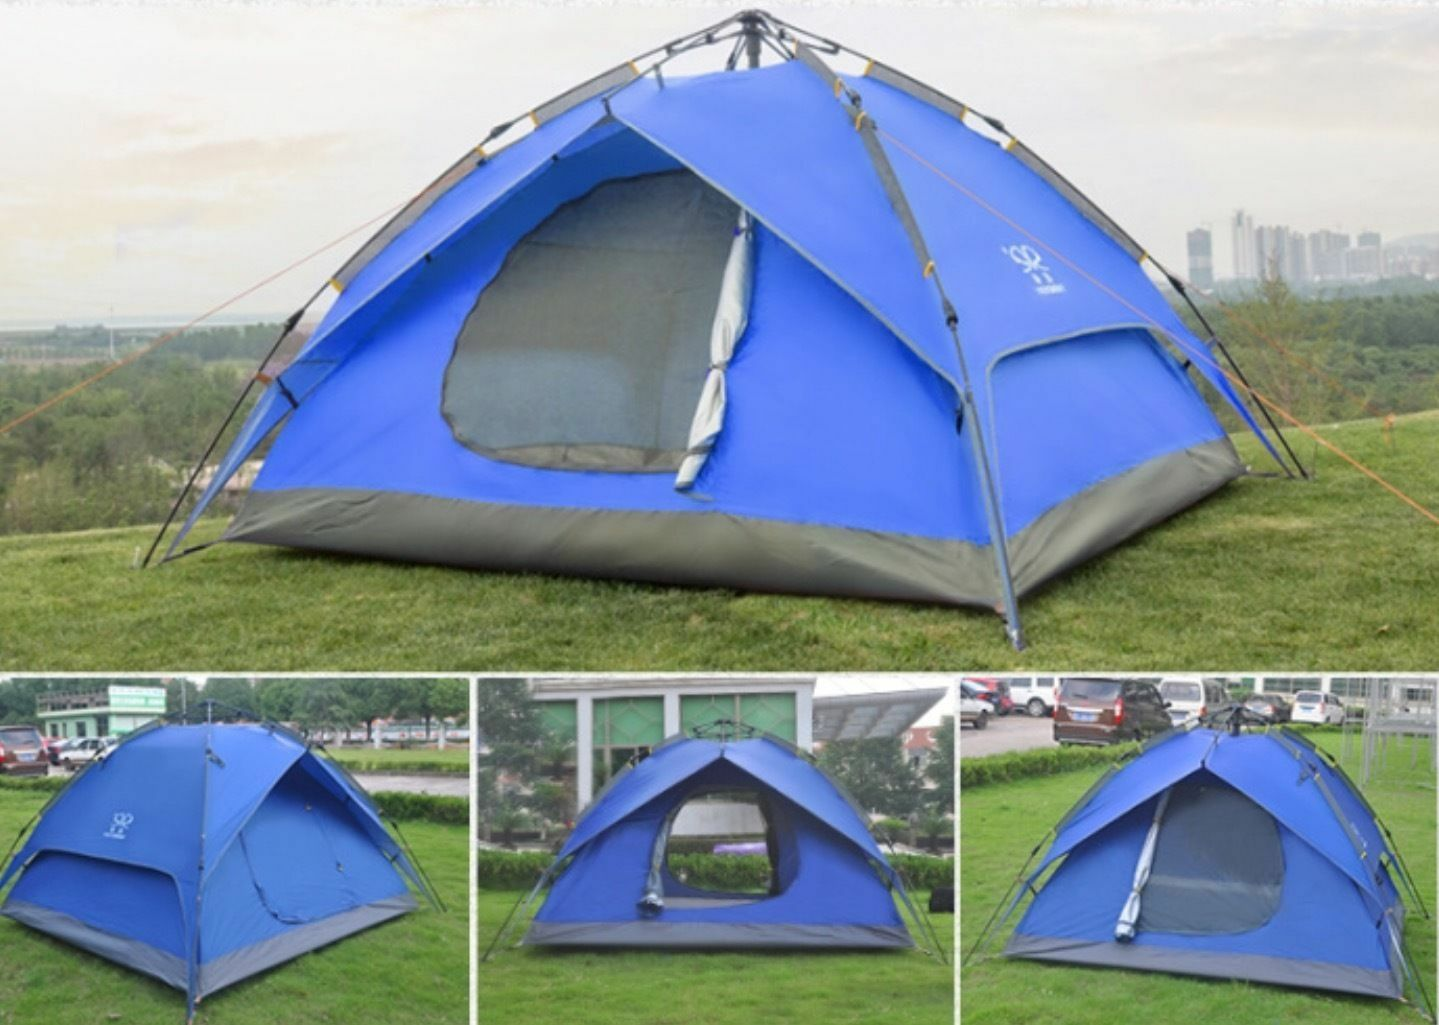 NEUF 3-4 Camping-Dôme-Tente - 3-4 NEUF - Personne-Automatique-Double-couche - Travel-Hiking-Shel a20532